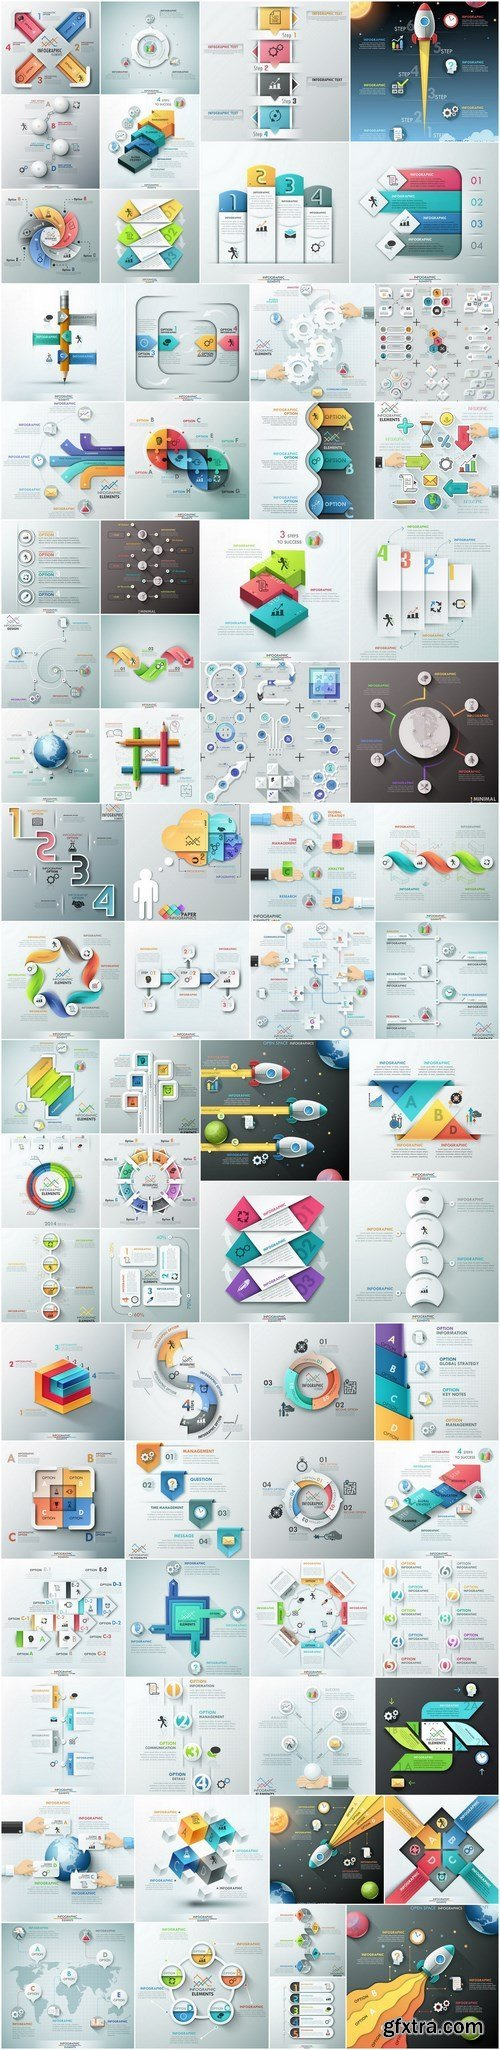 Templates of Infographics and Elements of design - 71xEPS Professional Vector Stock